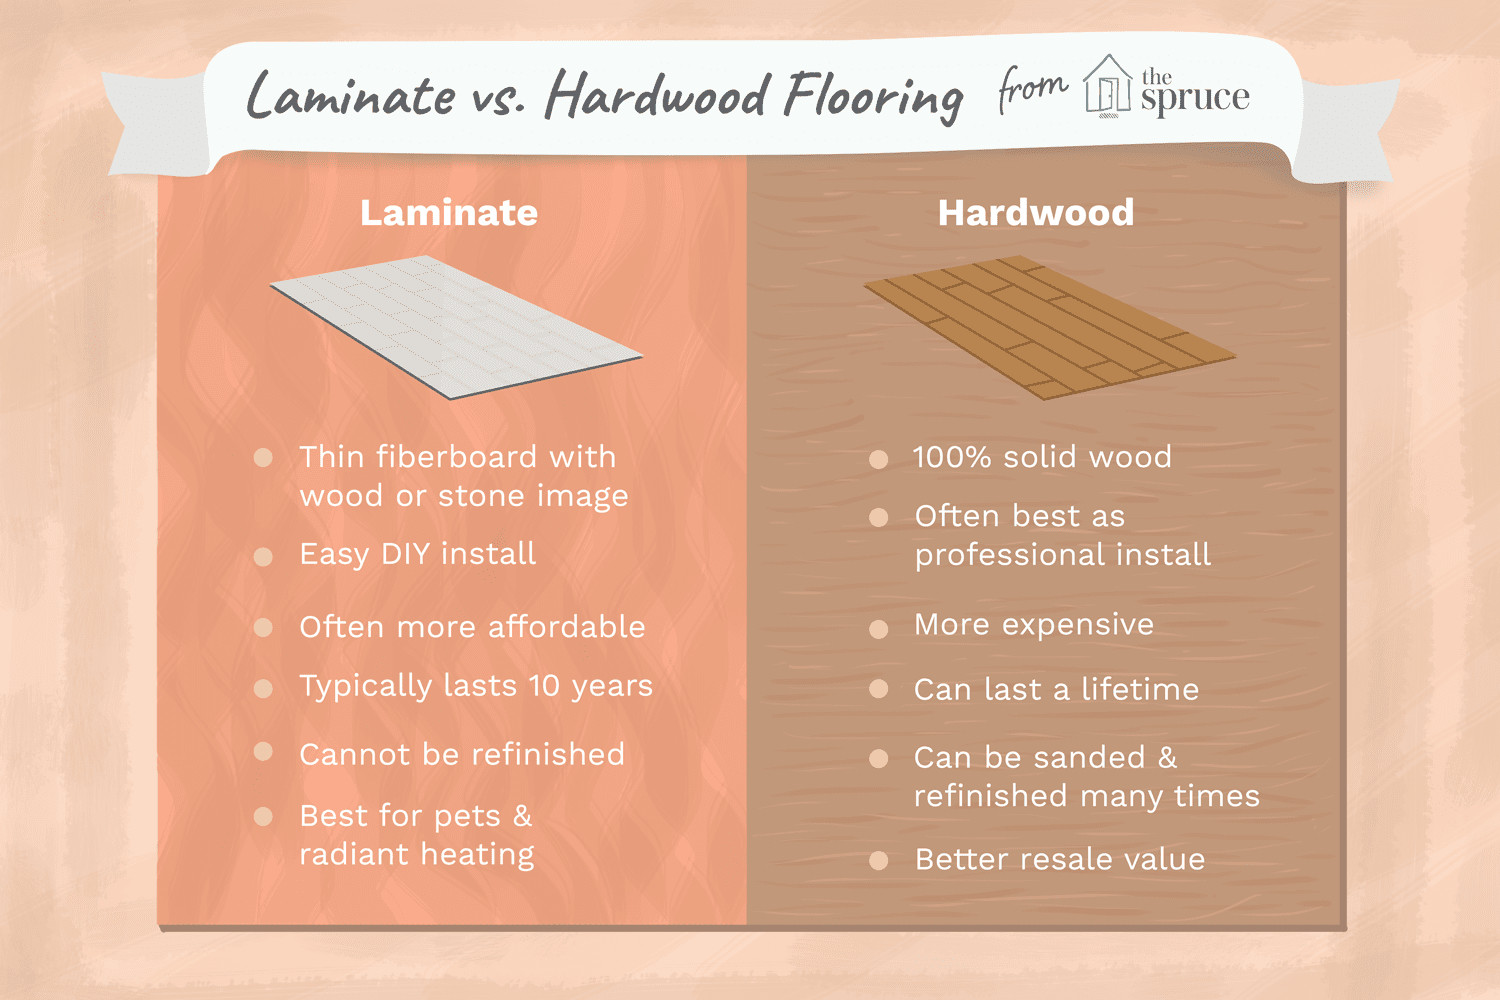 hardwood floor refinishing tacoma of laminate vs hardwood doesnt have to be a hard decision with hardwood doesnt have to be a hard decision